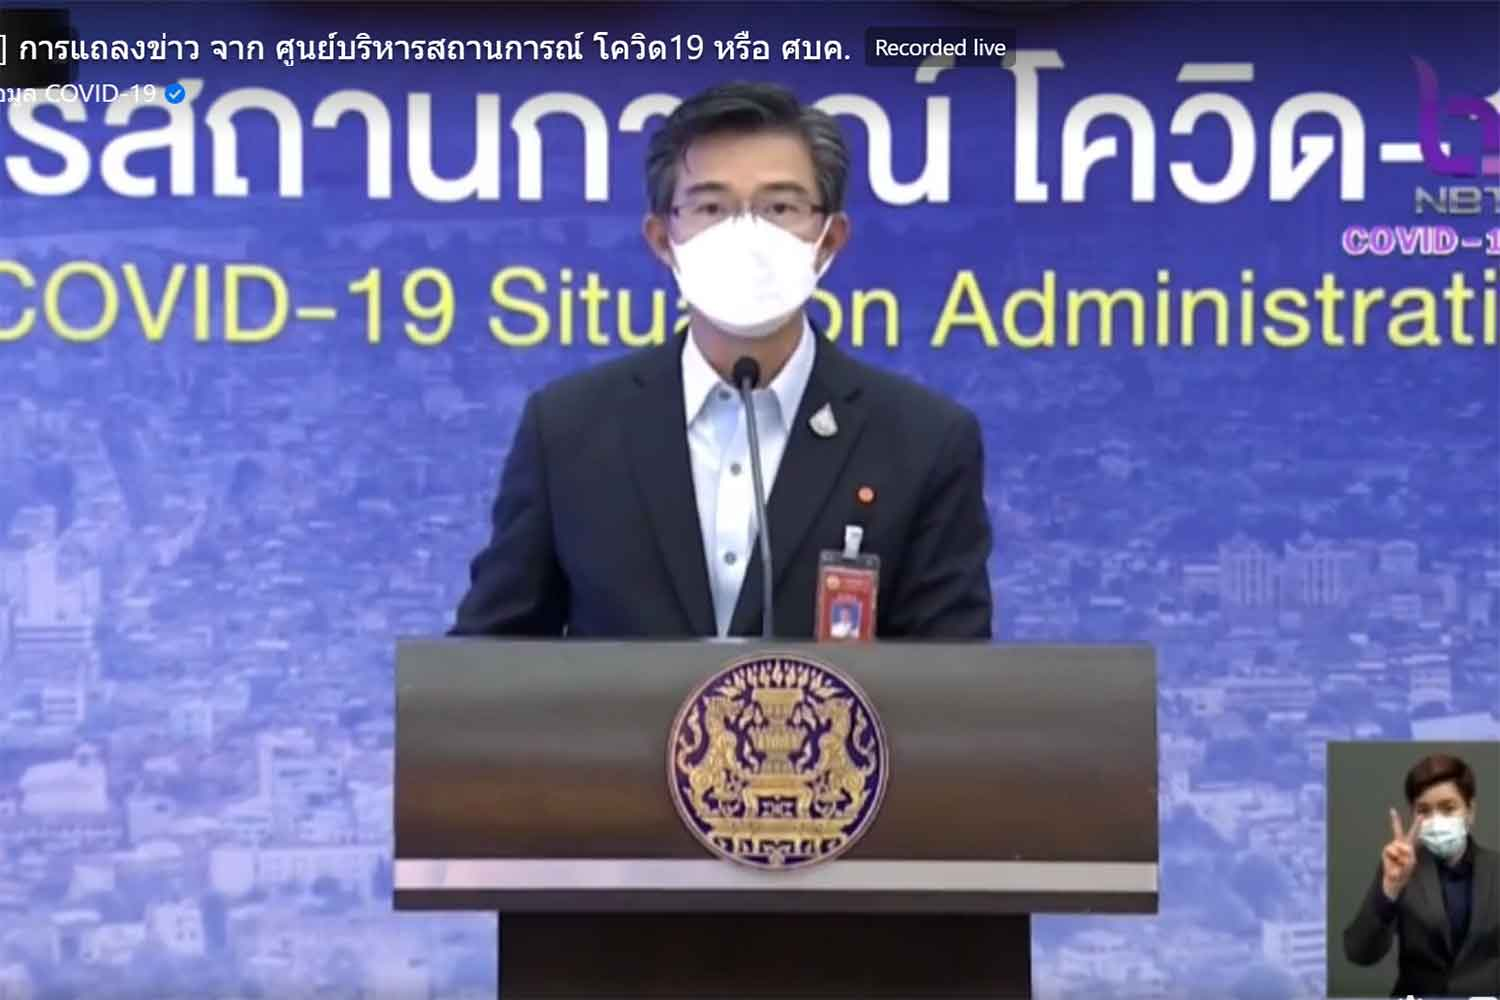 Taweesilp Visanuyothin, spokesman for the Centre for Covid-19 Situation Administration, delivers a crisis warning during the daily briefing broadcast from Government House in Bangkok on Friday. (Screenshot)